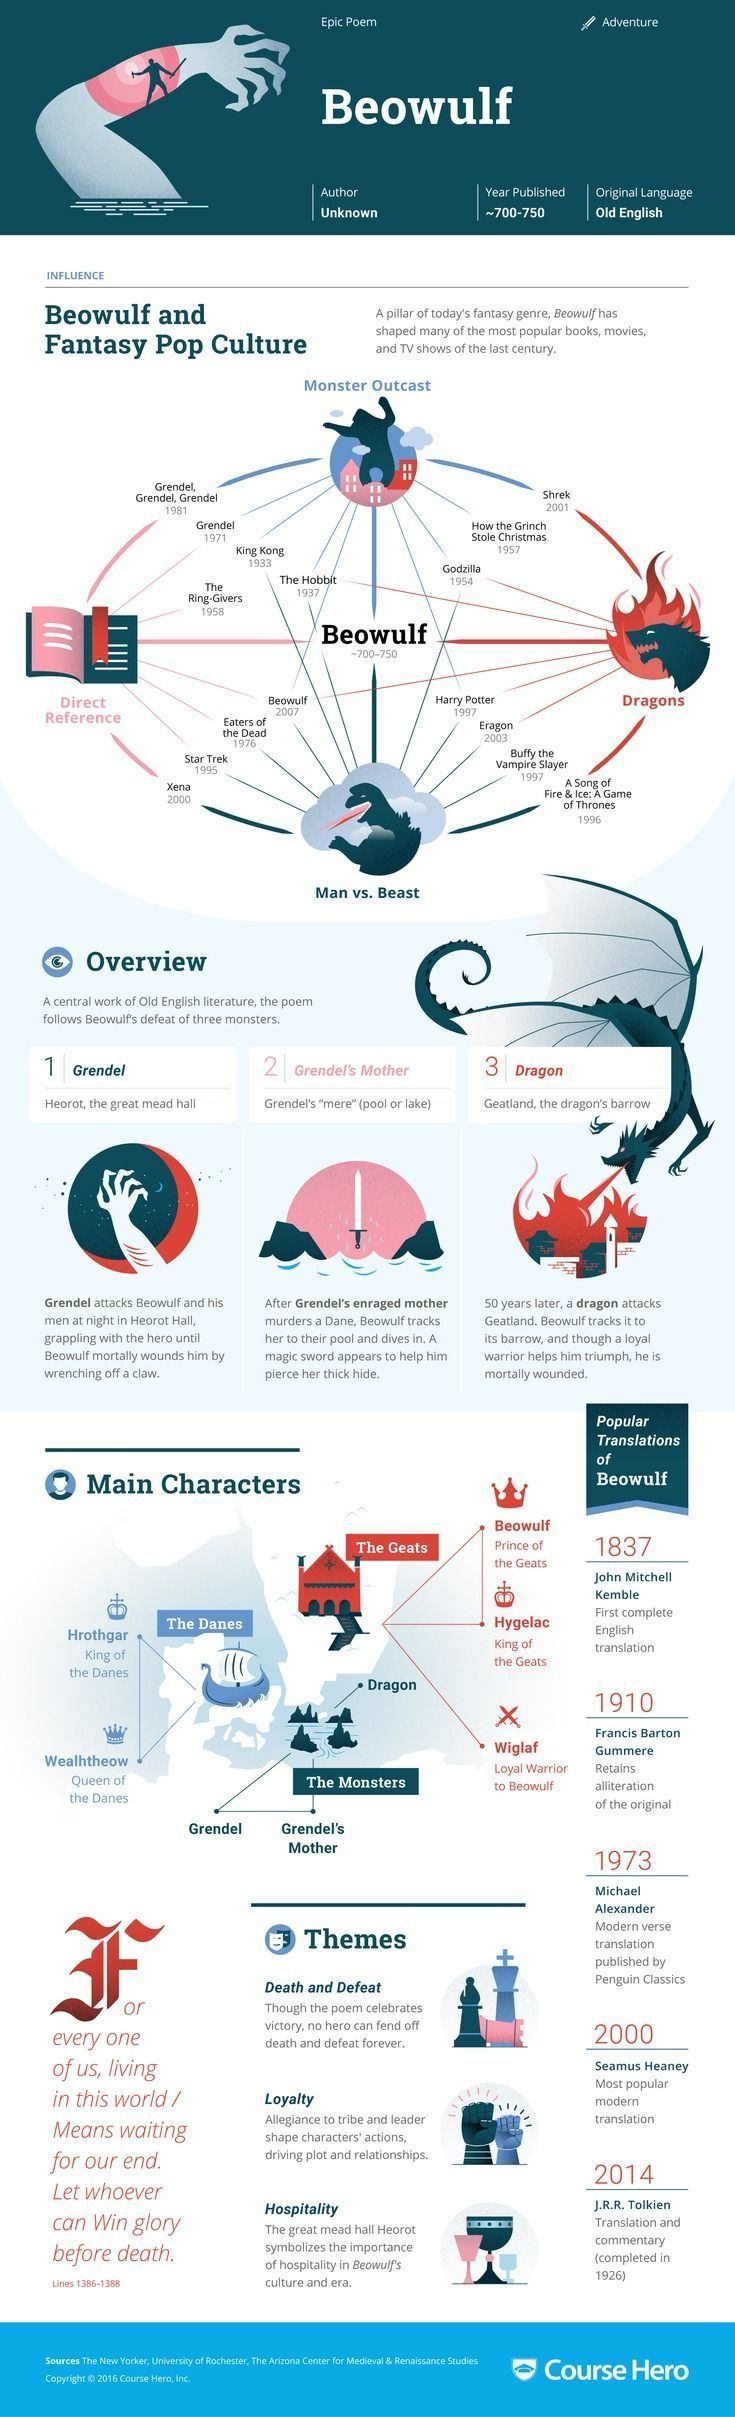 'Beowulf' infographic from Course Hero